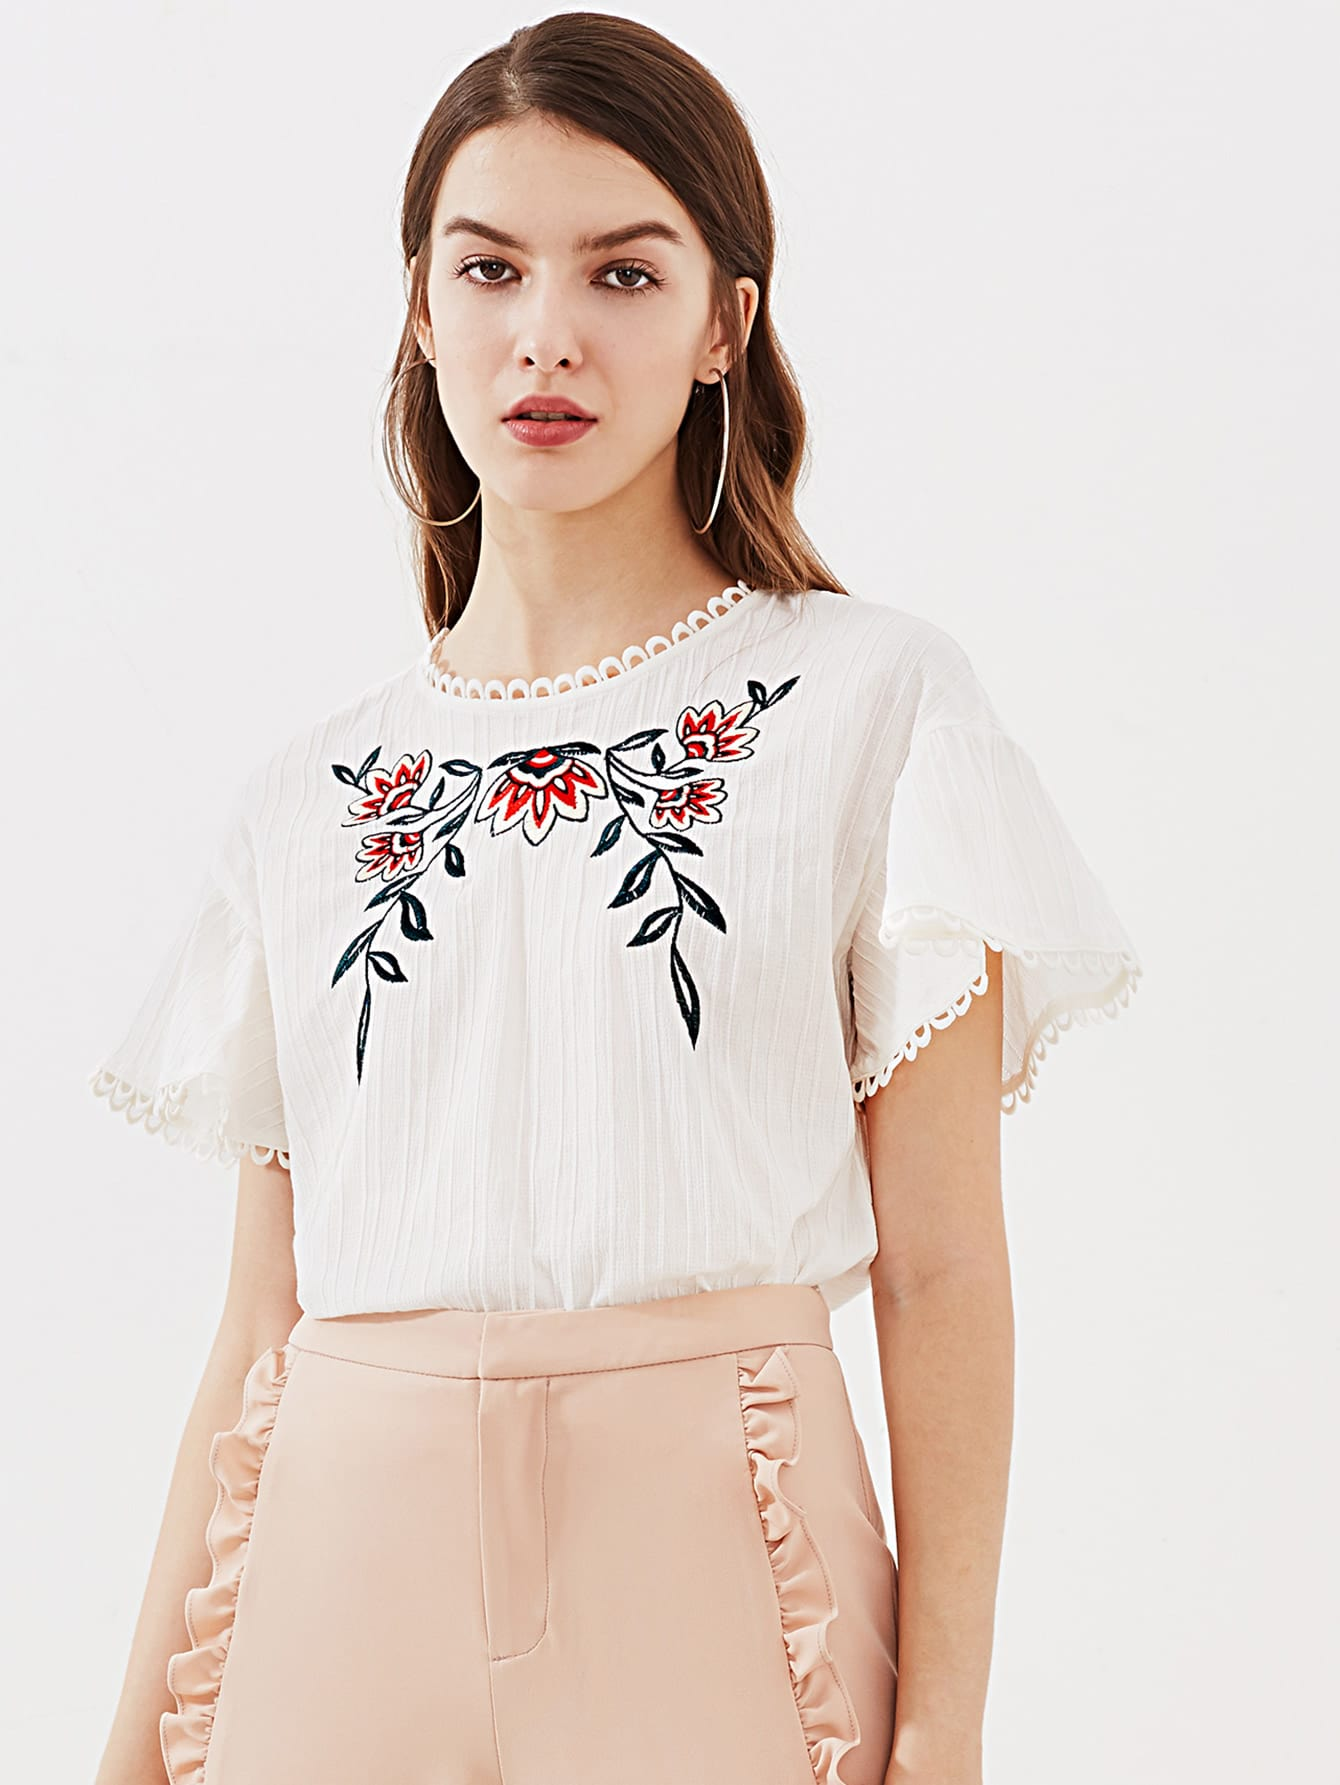 Lace Trim Keyhole Back Flower Embroidered Textured Top